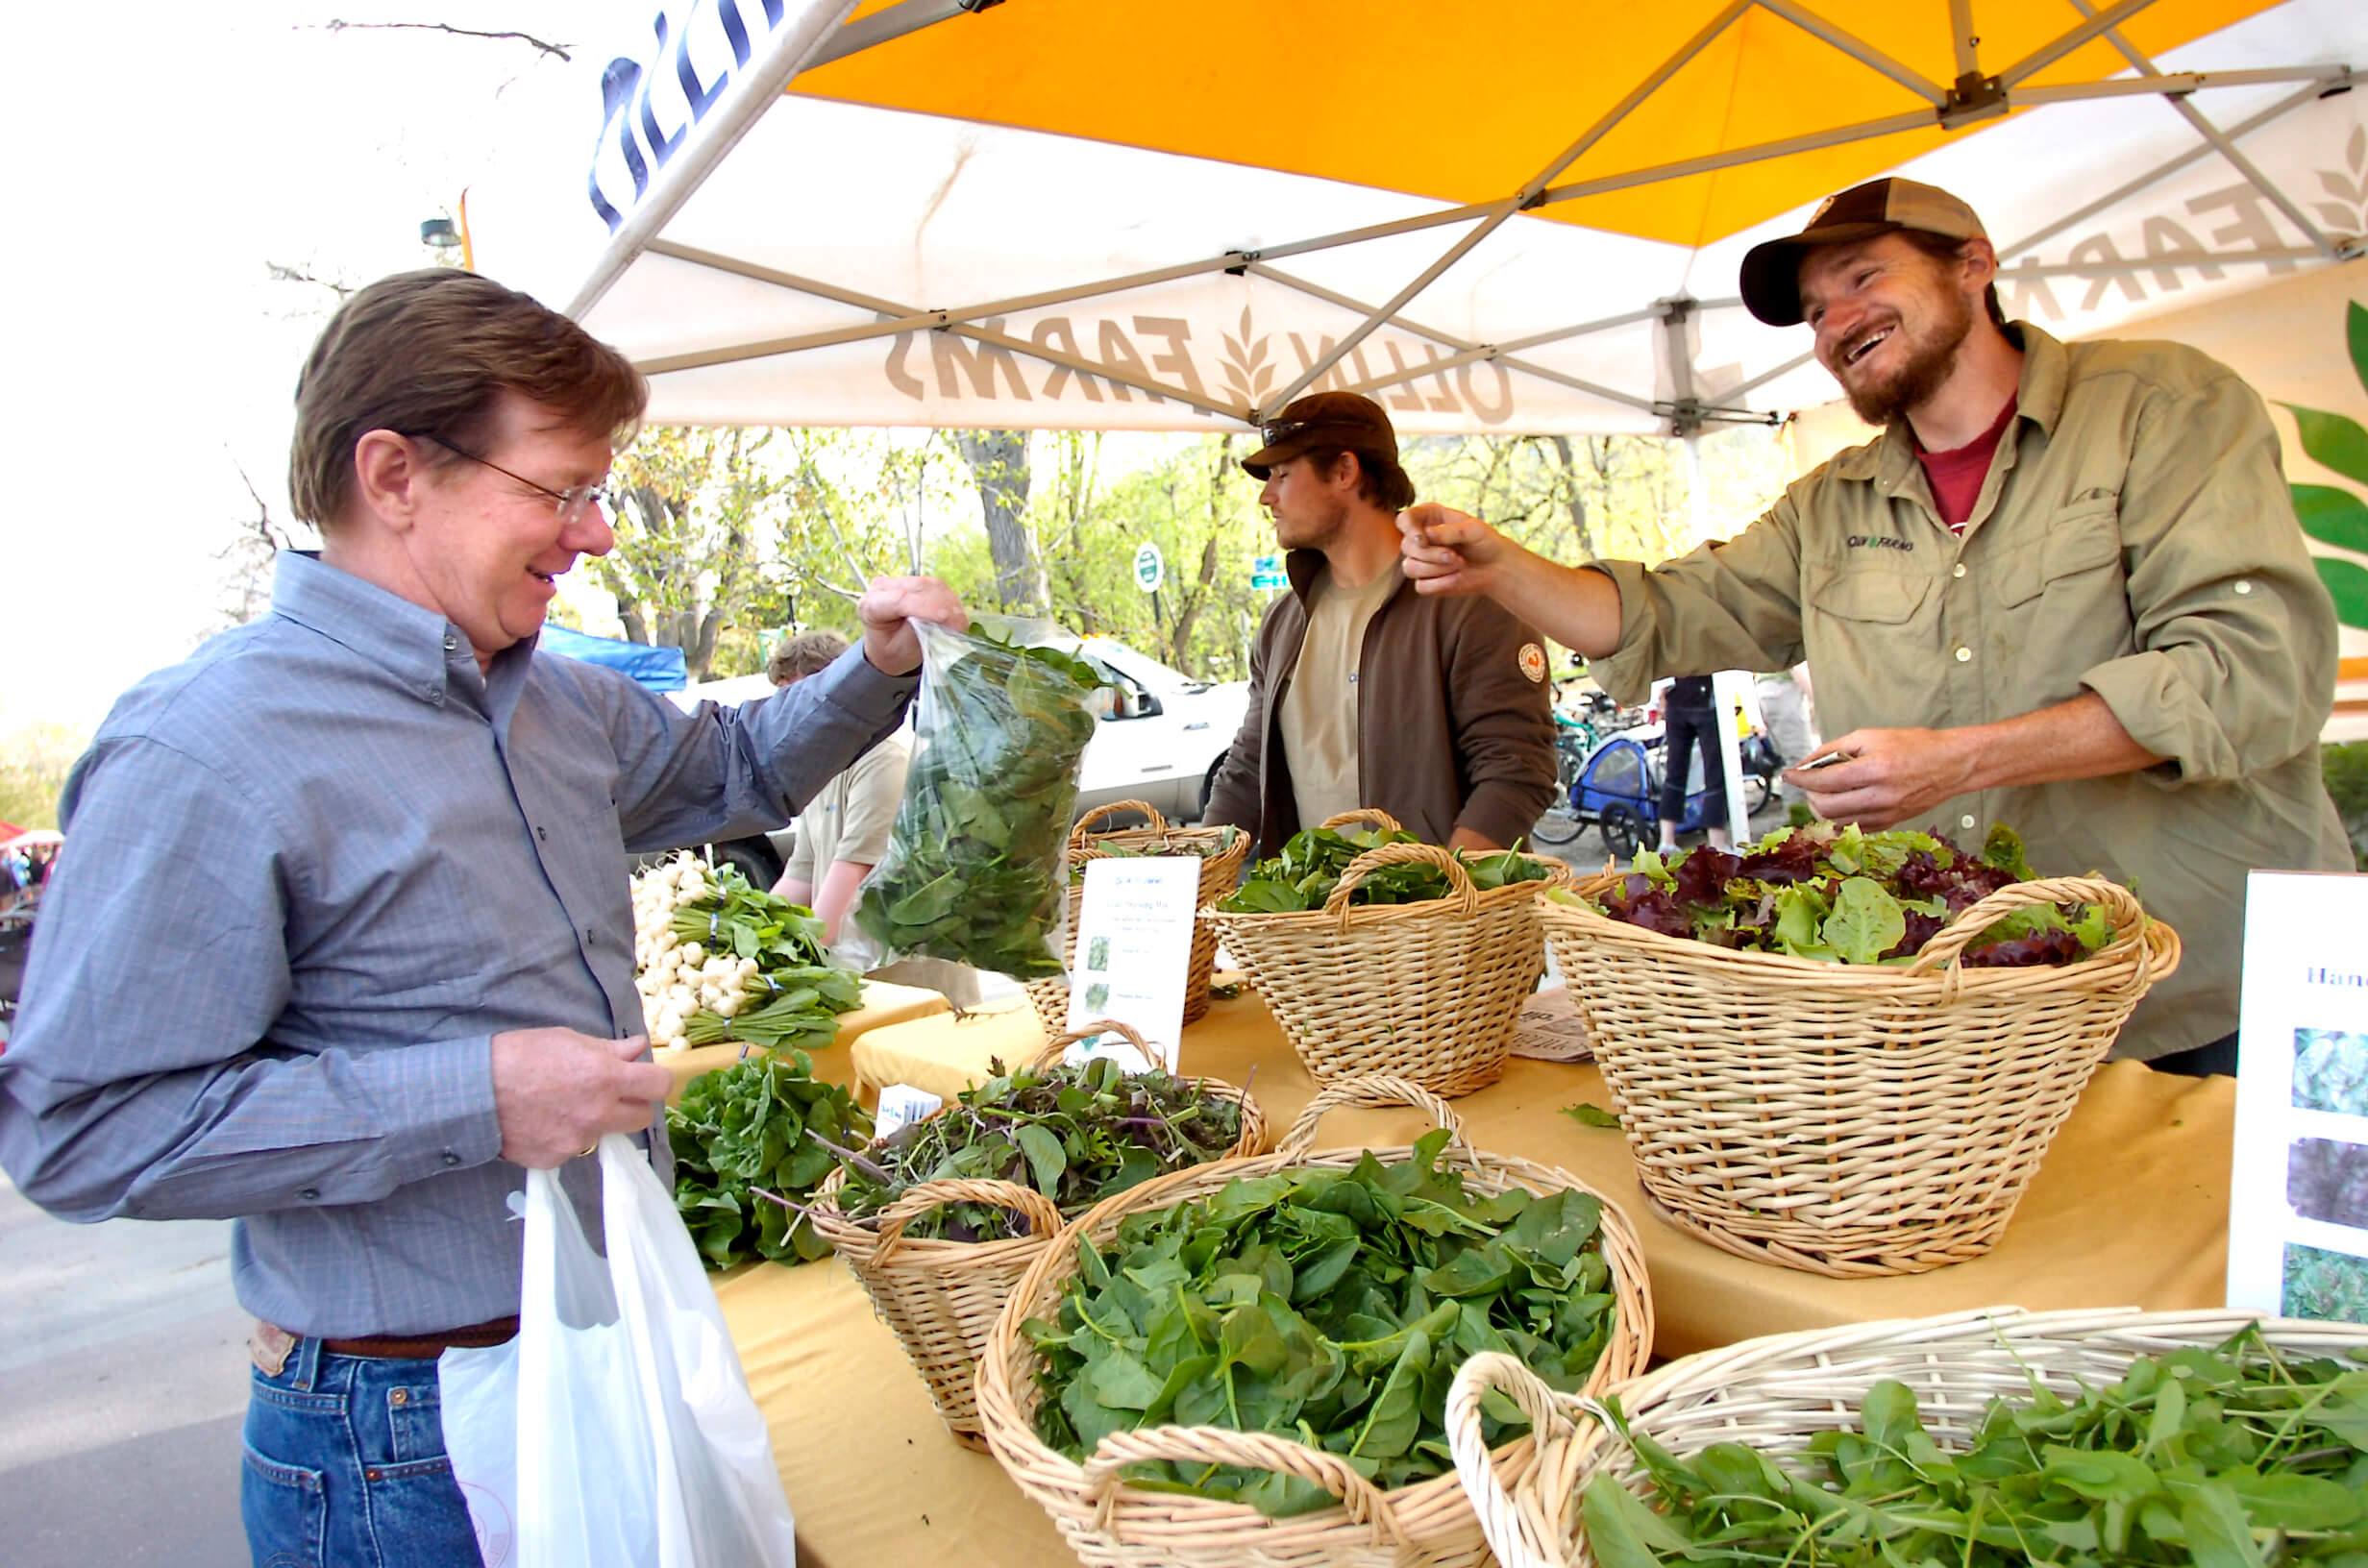 Buying locally not the answer